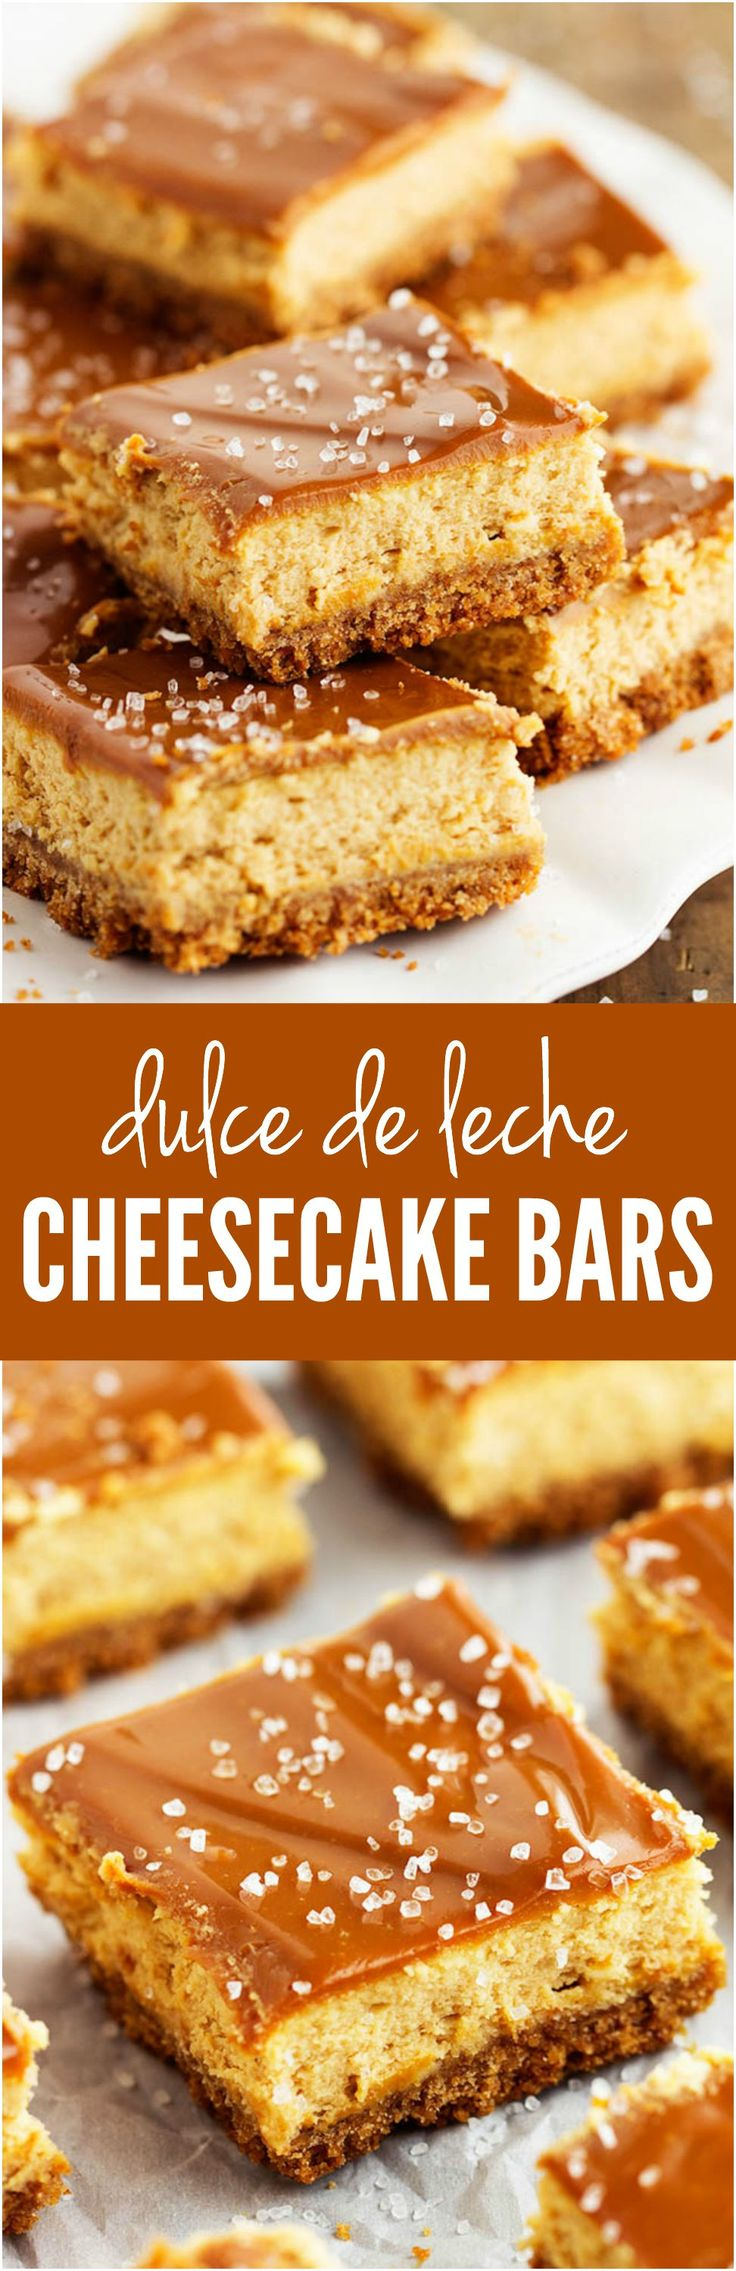 Creamy and delicious cheesecake bars made with a rich caramel sauce and glaze that are out of this world!